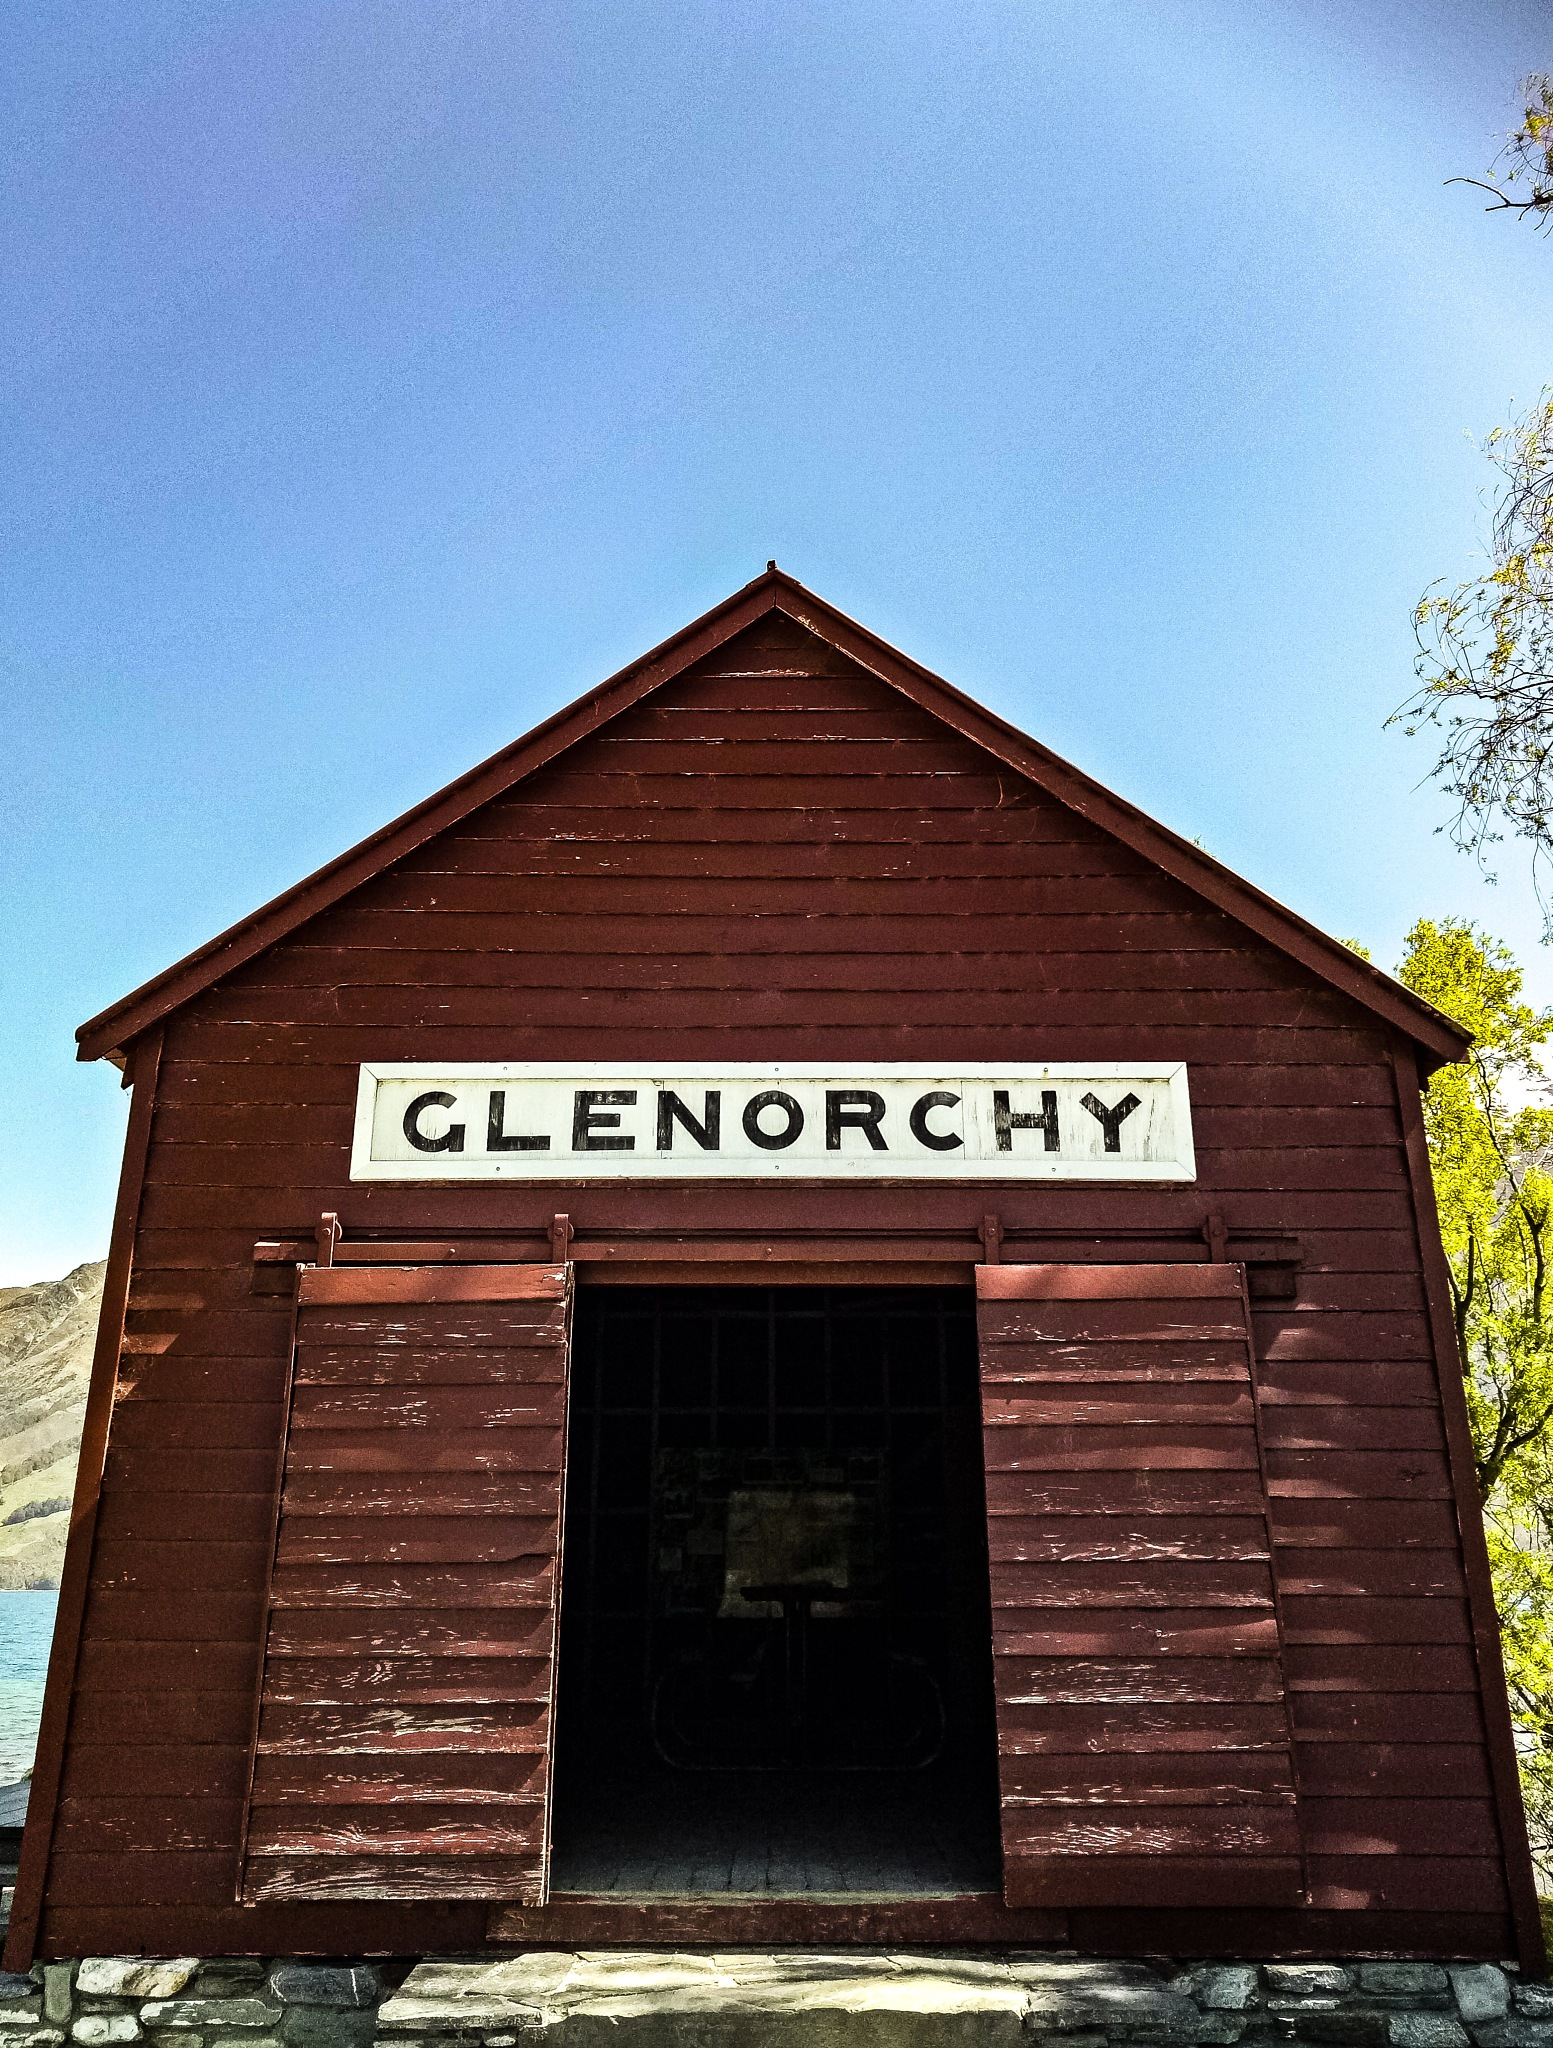 glenorchy shed nz by Mark Graham